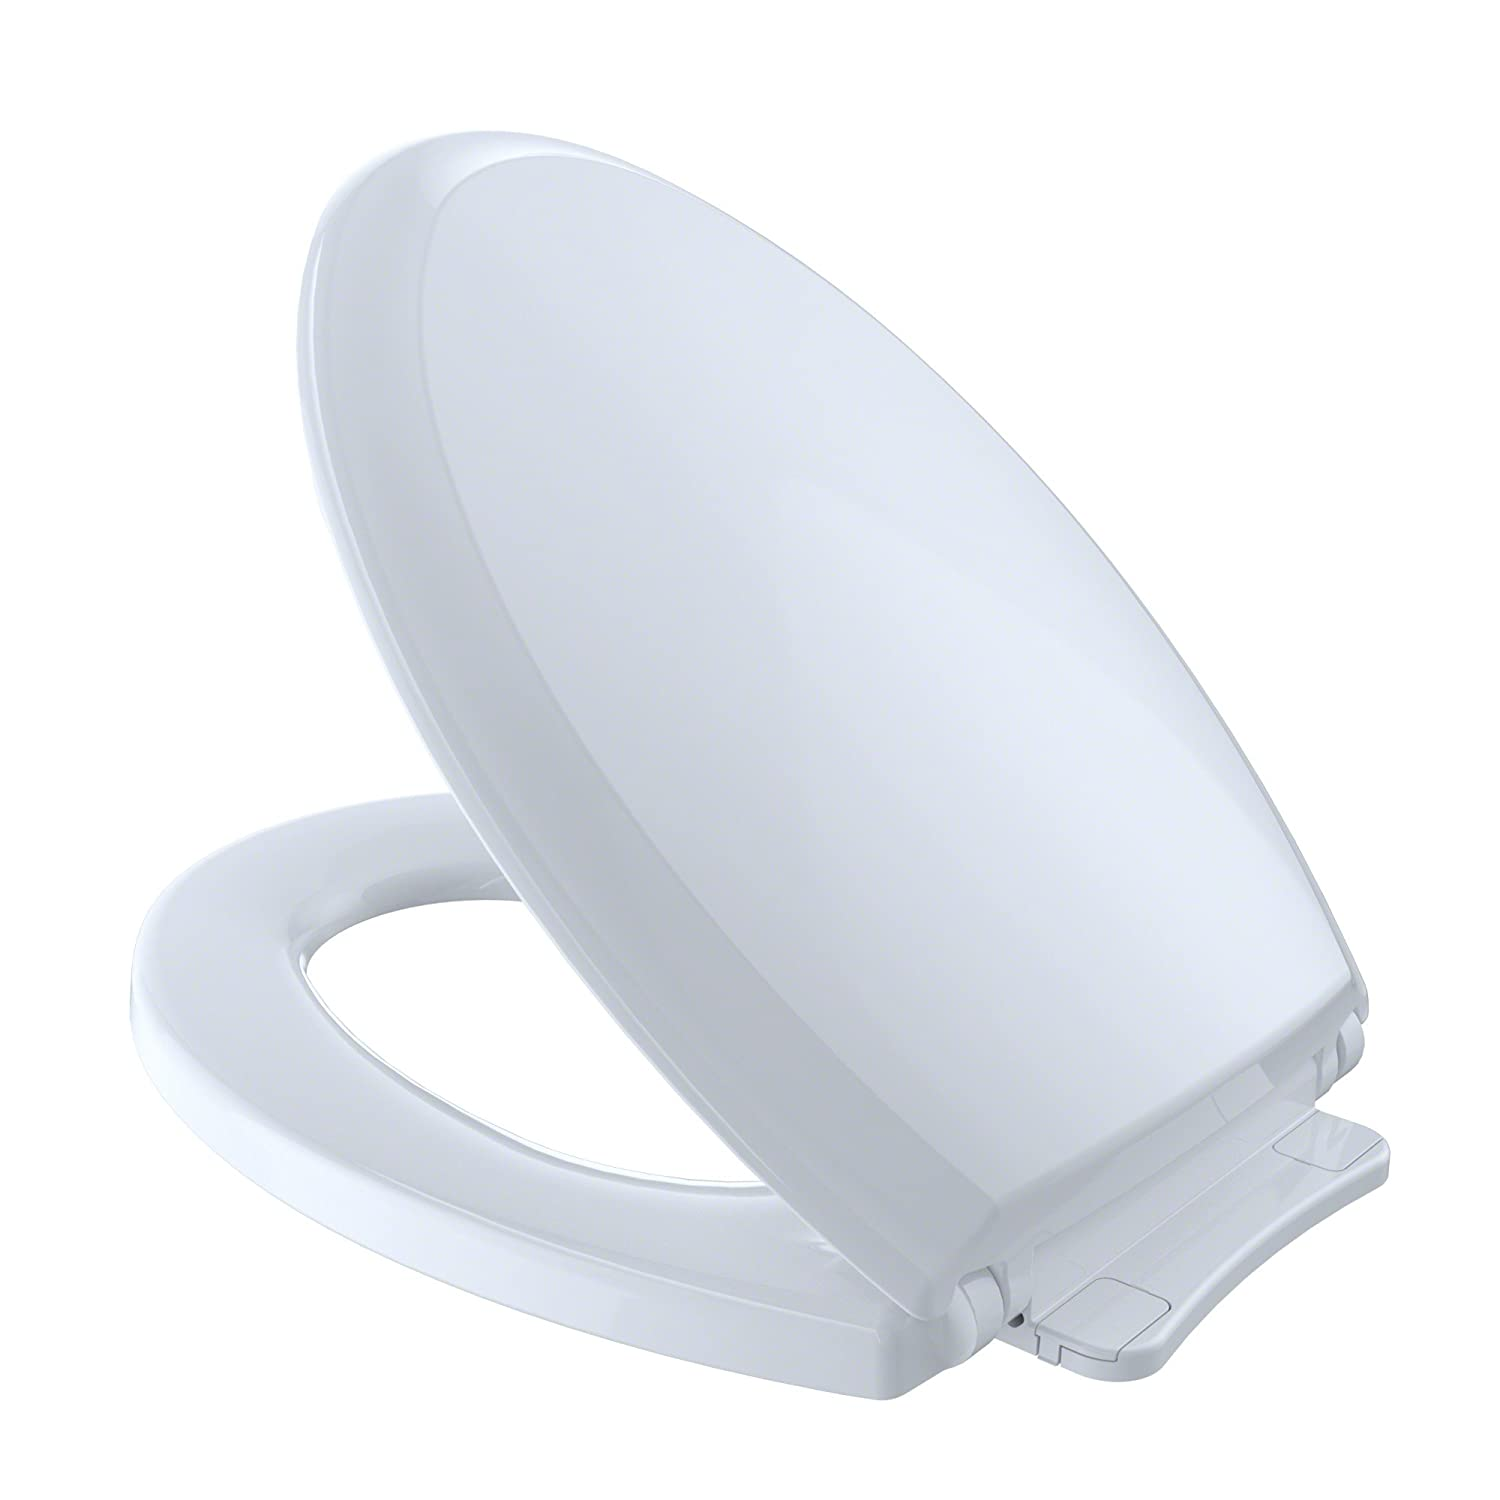 Toto Elongated Toilet Seat.Toto Ss224 11 Guinevere Softclose Elongated Toilet Seat Colonial White